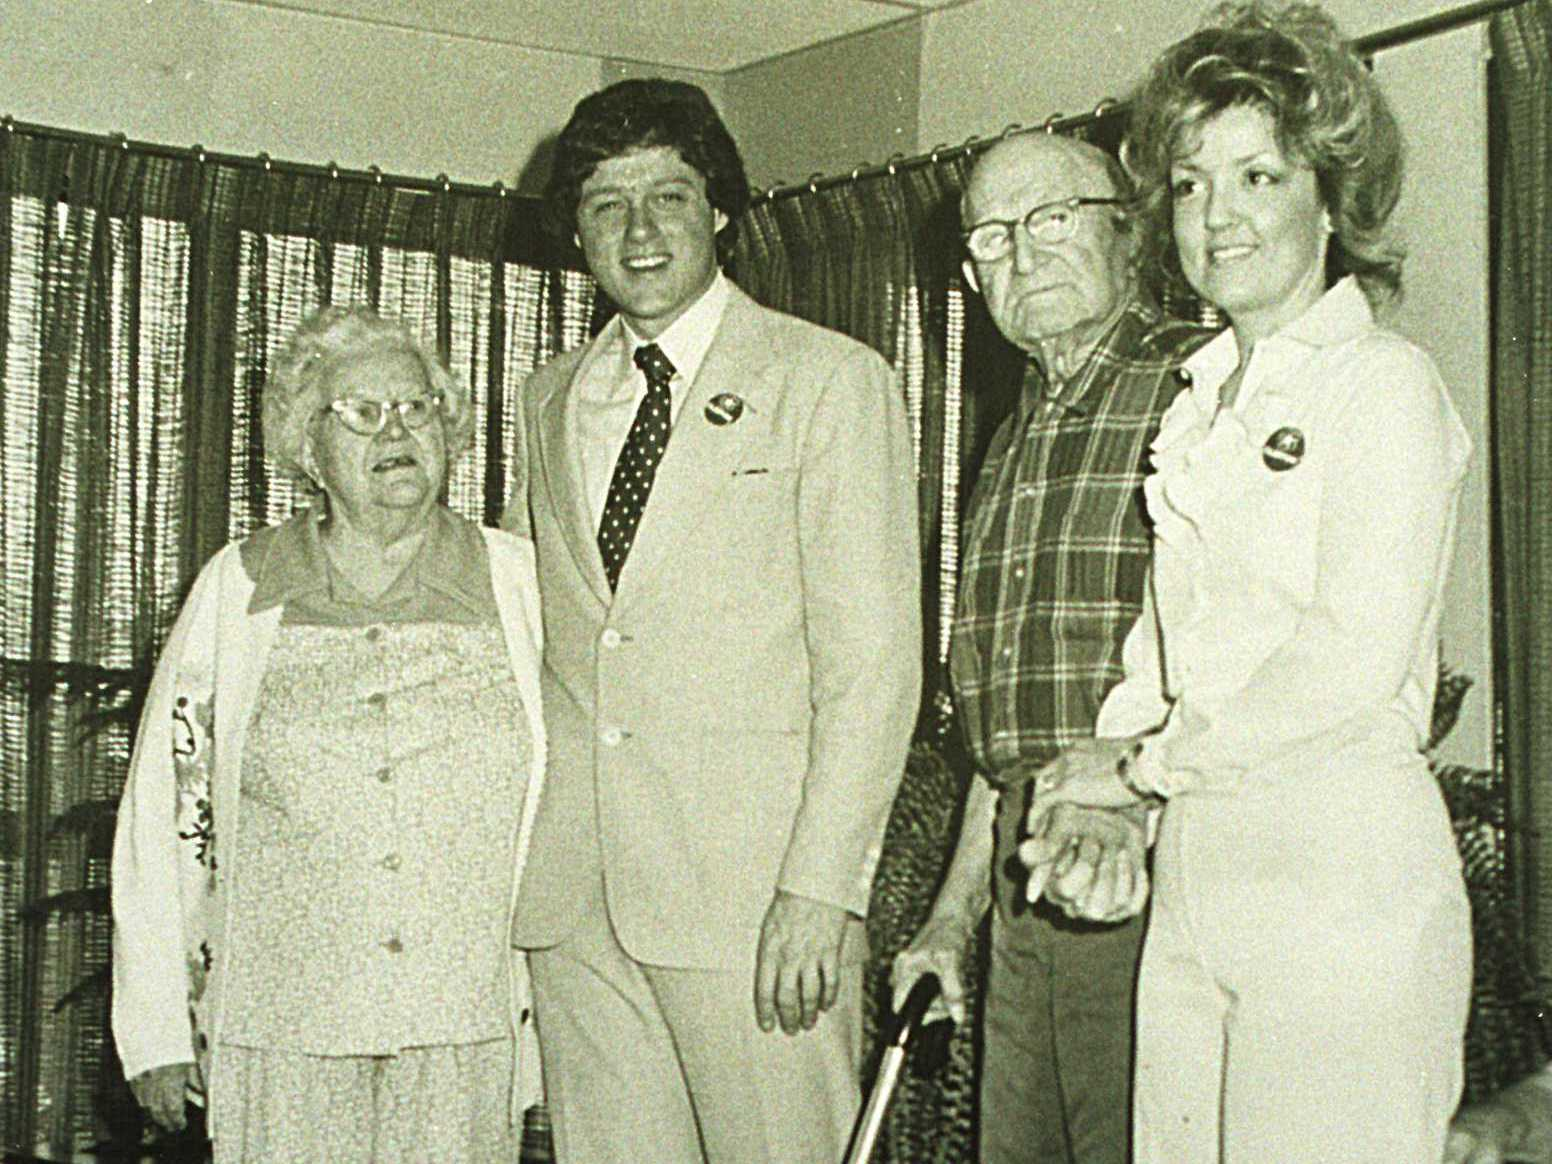 Bill Clinton Roblox A Brief History Of Juanita Broaddrick The Woman Accusing Bill Clinton Of Rape Ncpr News